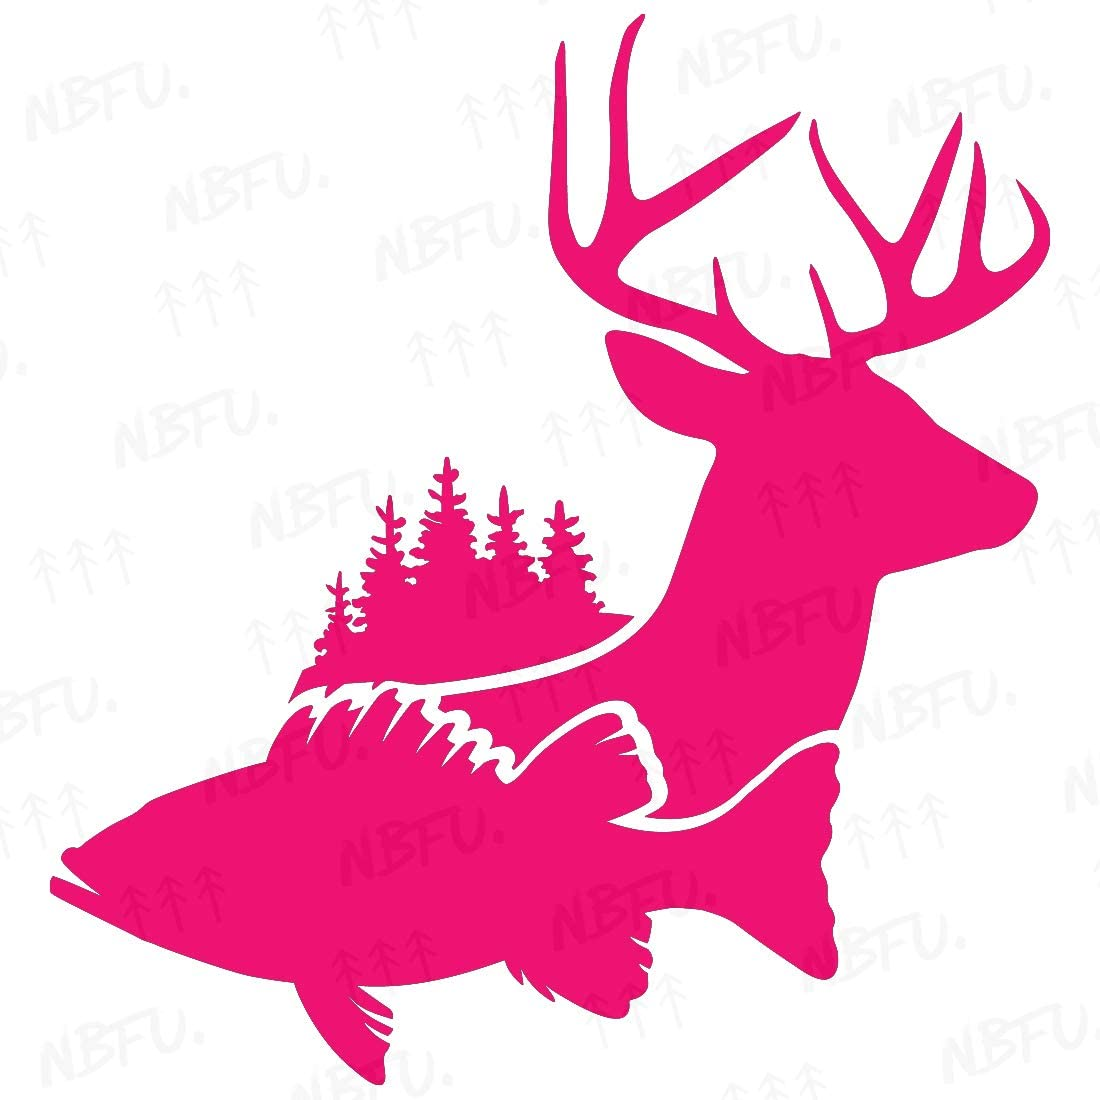 NBFU Decals Fish Deer Whitetail Hunting Forest (Pink) (Set of 2) Premium Waterproof Vinyl Decal Stickers for Laptop Phone Accessory Helmet Car Window Bumper Mug Tuber Cup Door Wall Decoration